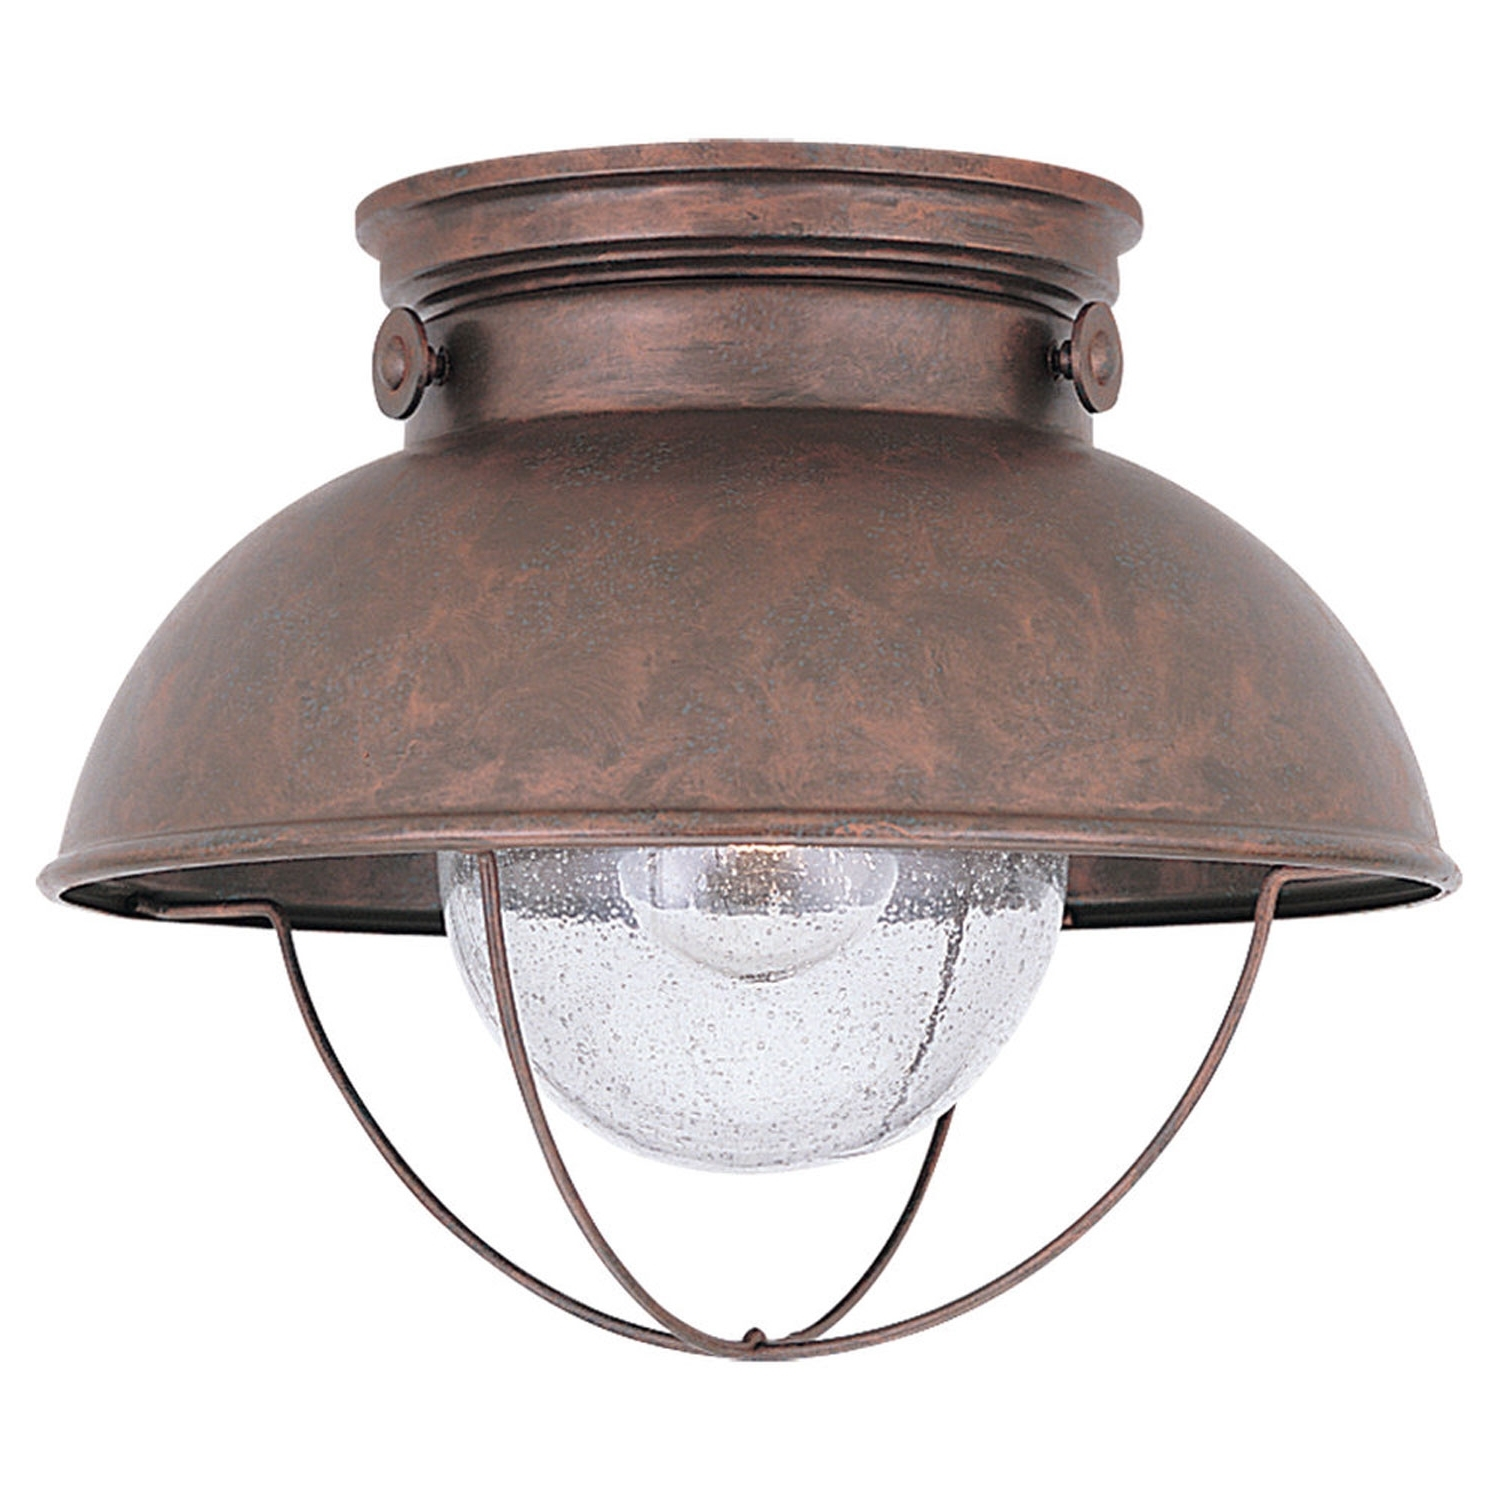 Well Liked Sea Gull Lighting Sebring Weathered Copper Outdoor Ceiling Light On Sale Pertaining To Outdoor Ceiling Mounted Lights (View 20 of 20)